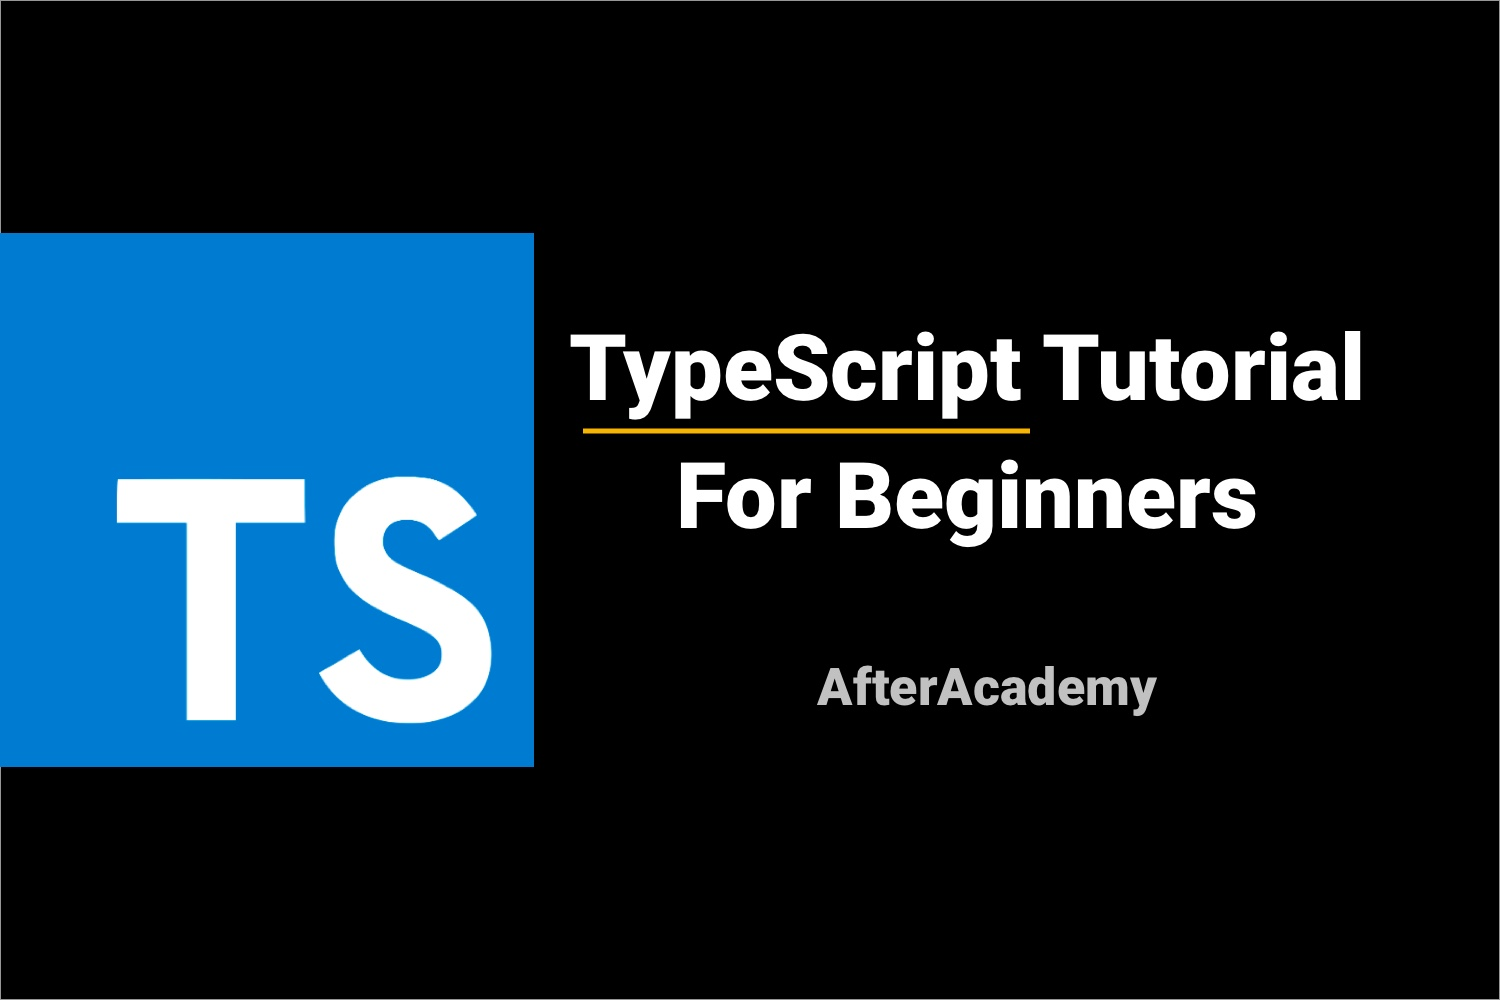 TypeScript Tutorial For Beginners